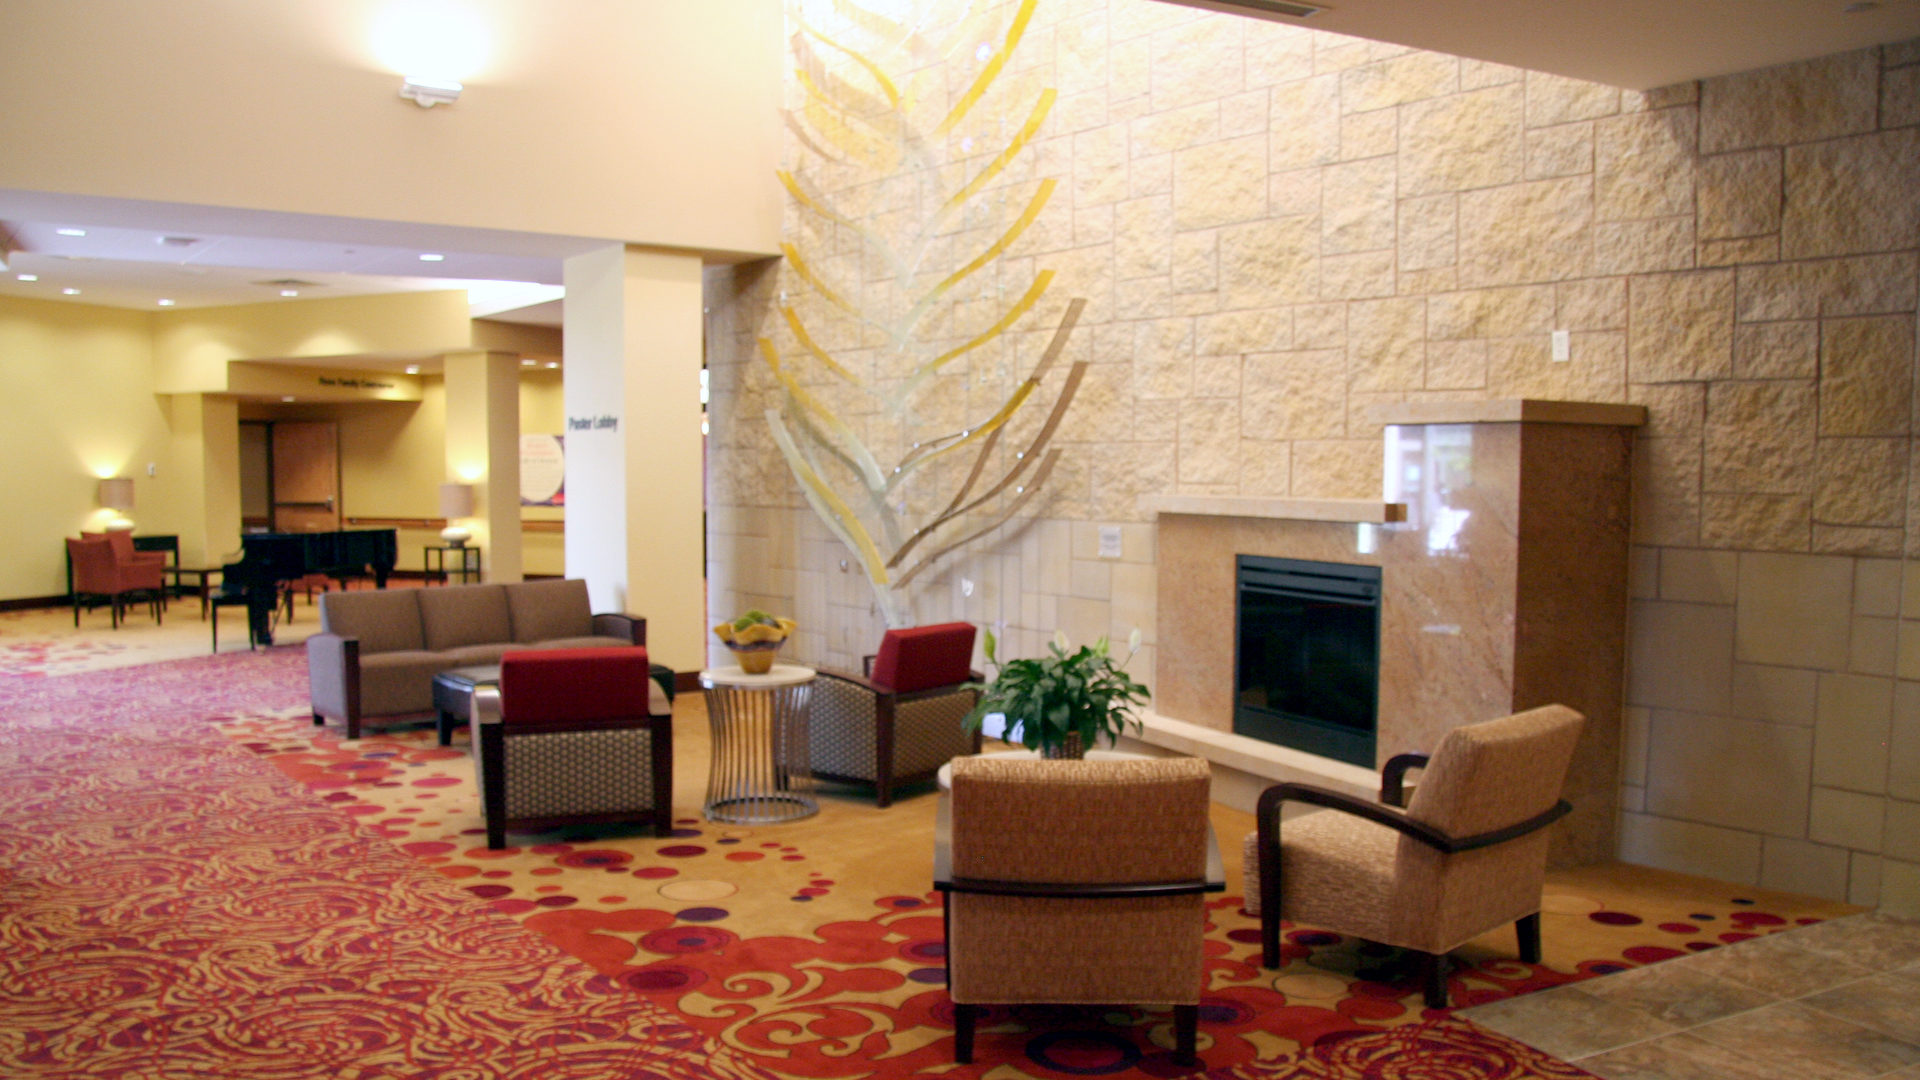 Shaller Sholom East Bentson-Chapman Senior Living Campus St Paul MN Lobby Fireplace Seating Area